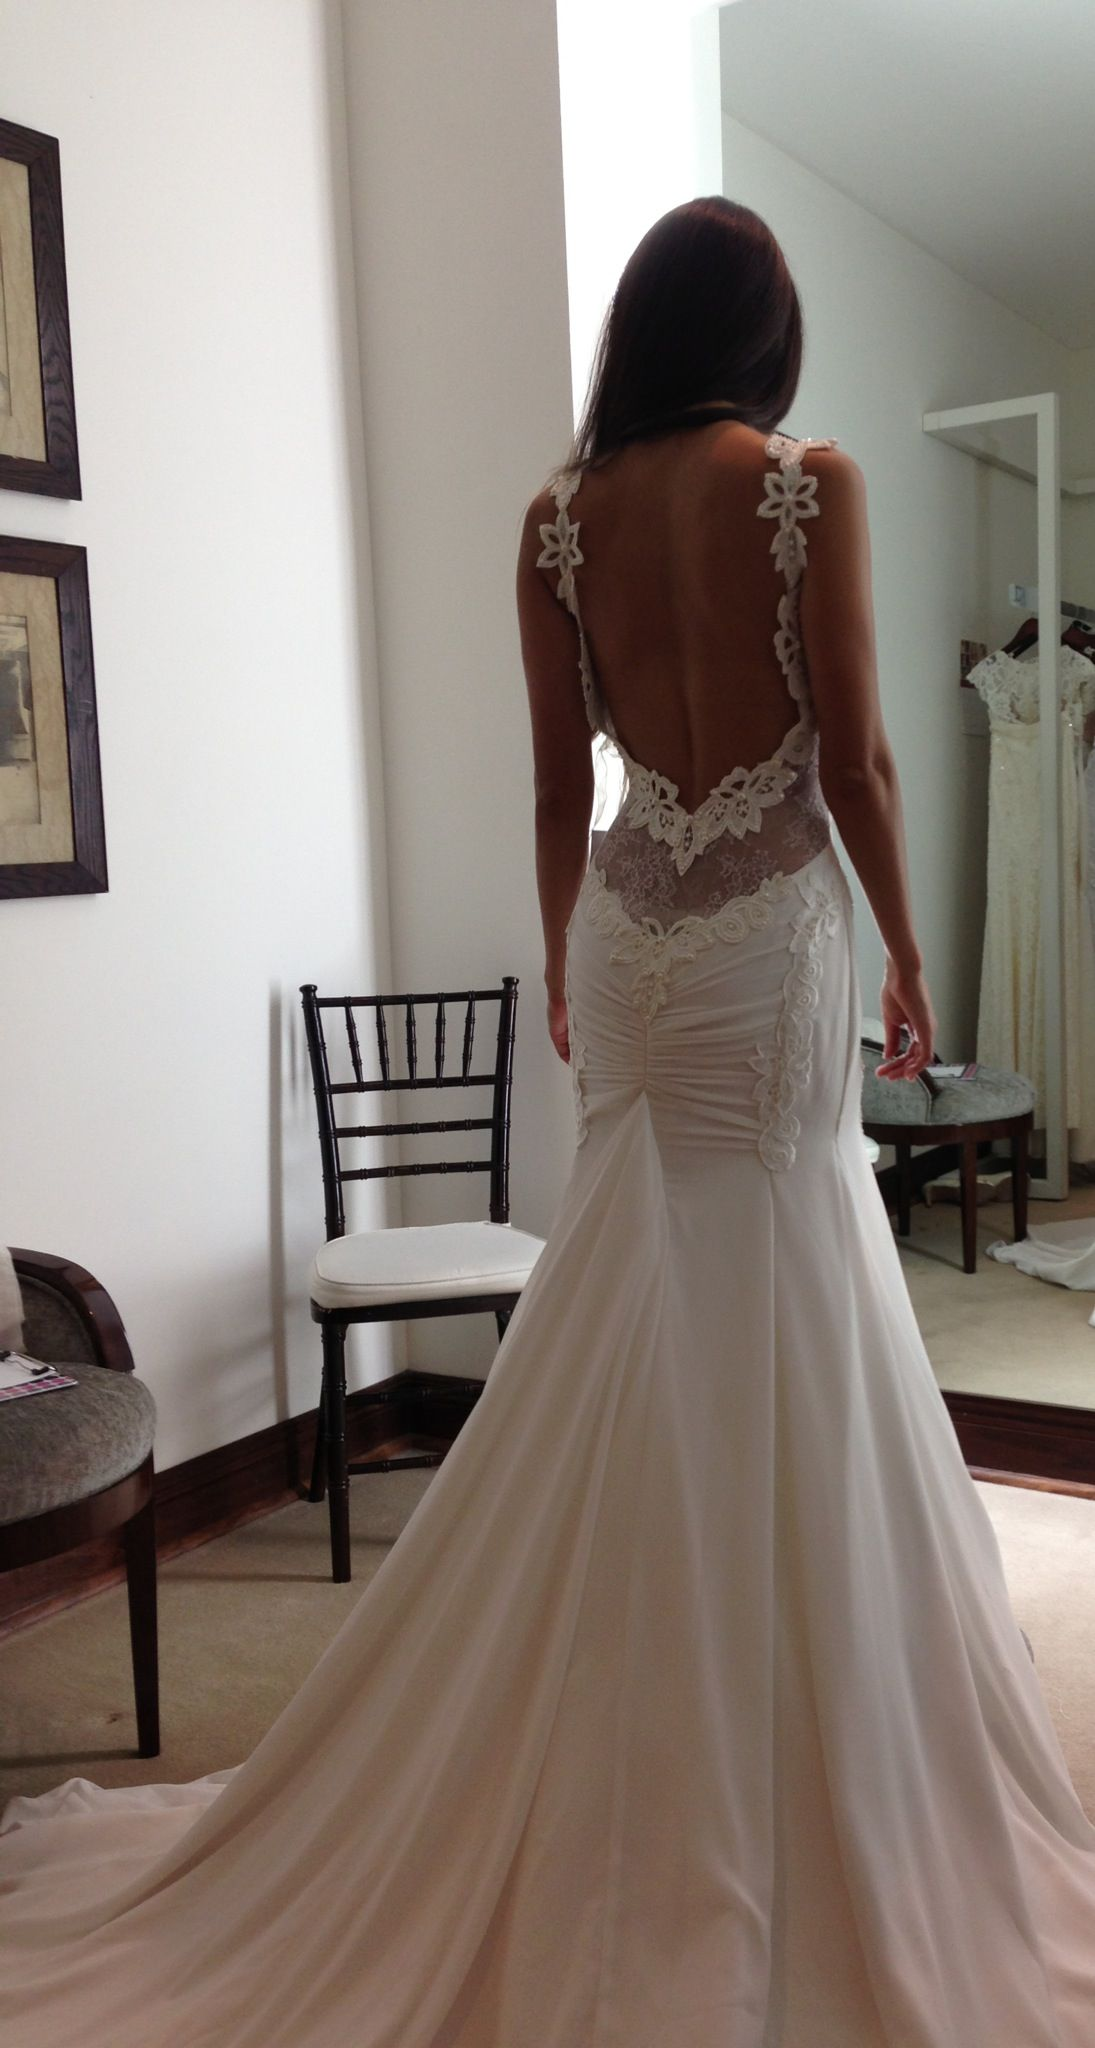 Beautiful bride trying on berta at chic parisien soon to be a